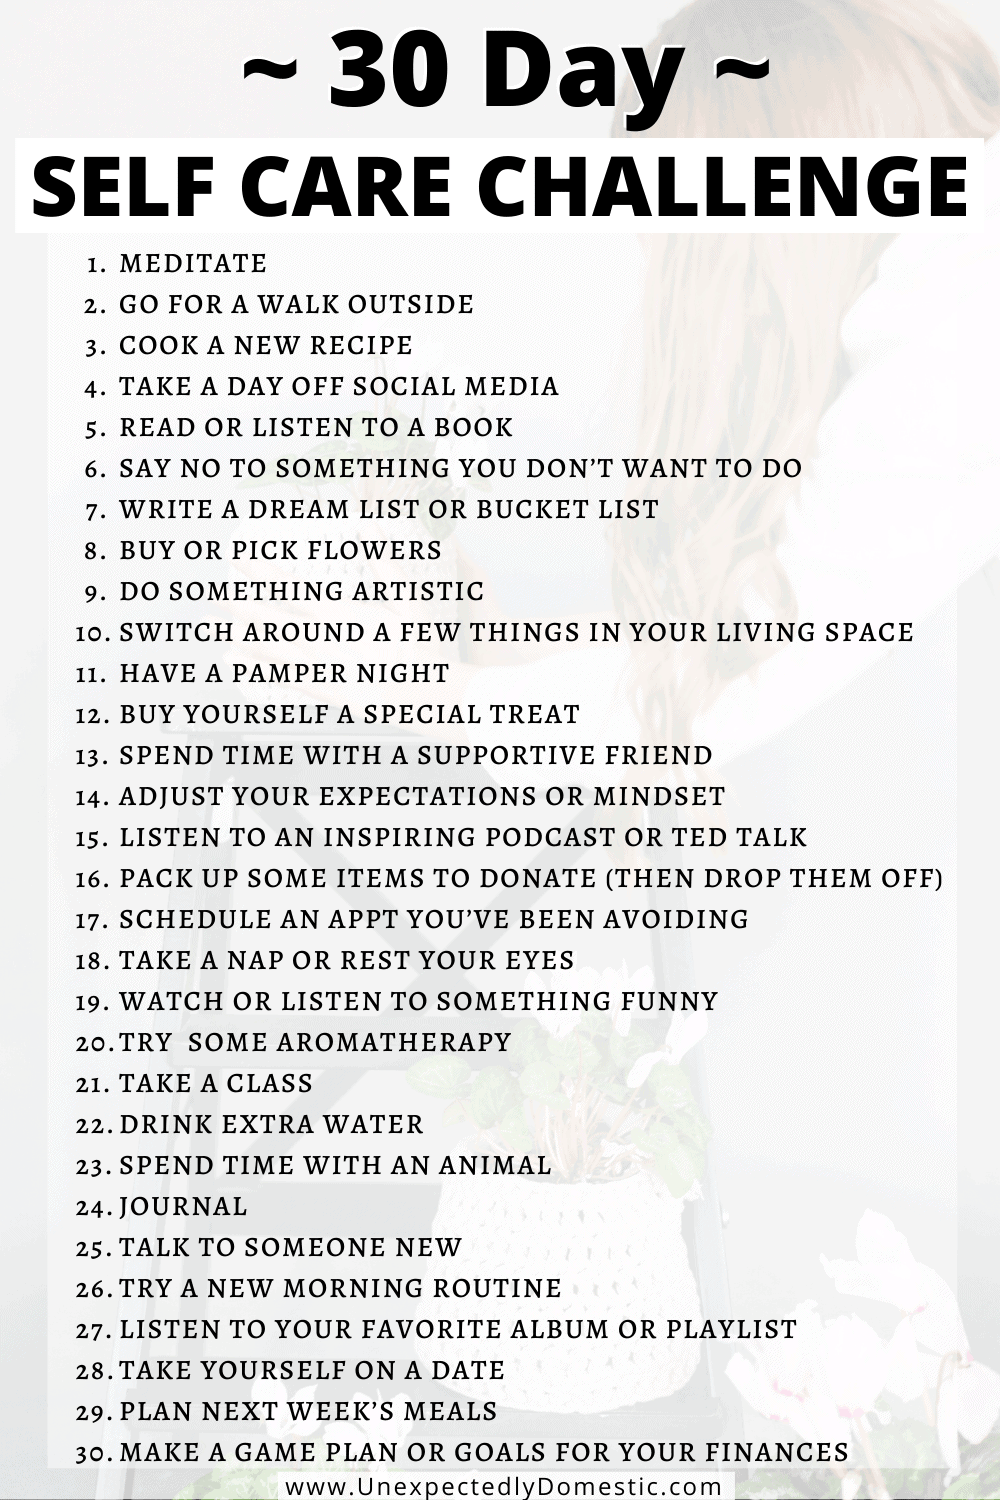 30 self care challenge ideas! Use them for a 7 or 30 day self care challenge, or sprinkle them into your life daily to nourish your body, mind, and soul.